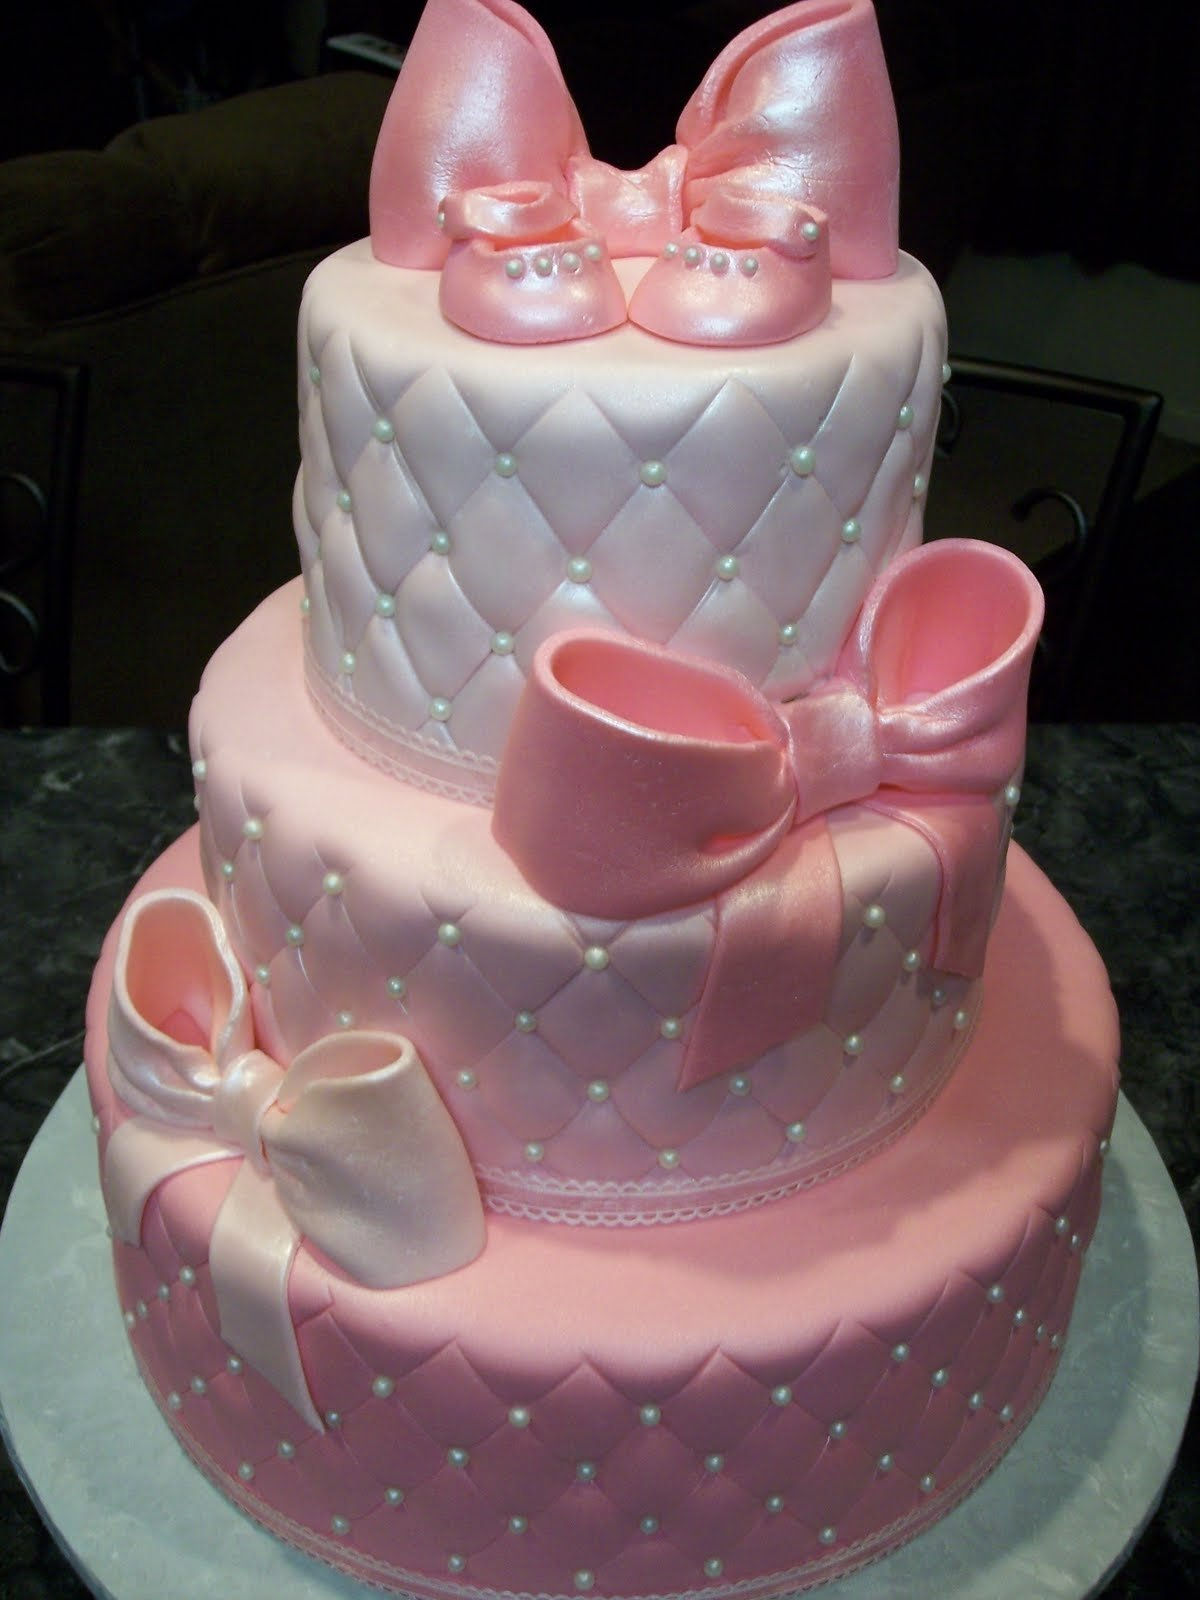 10 Beautiful Girl Baby Shower Cake Ideas girl baby shower cakes and cupcakes ideas baby cake imagesbaby 4